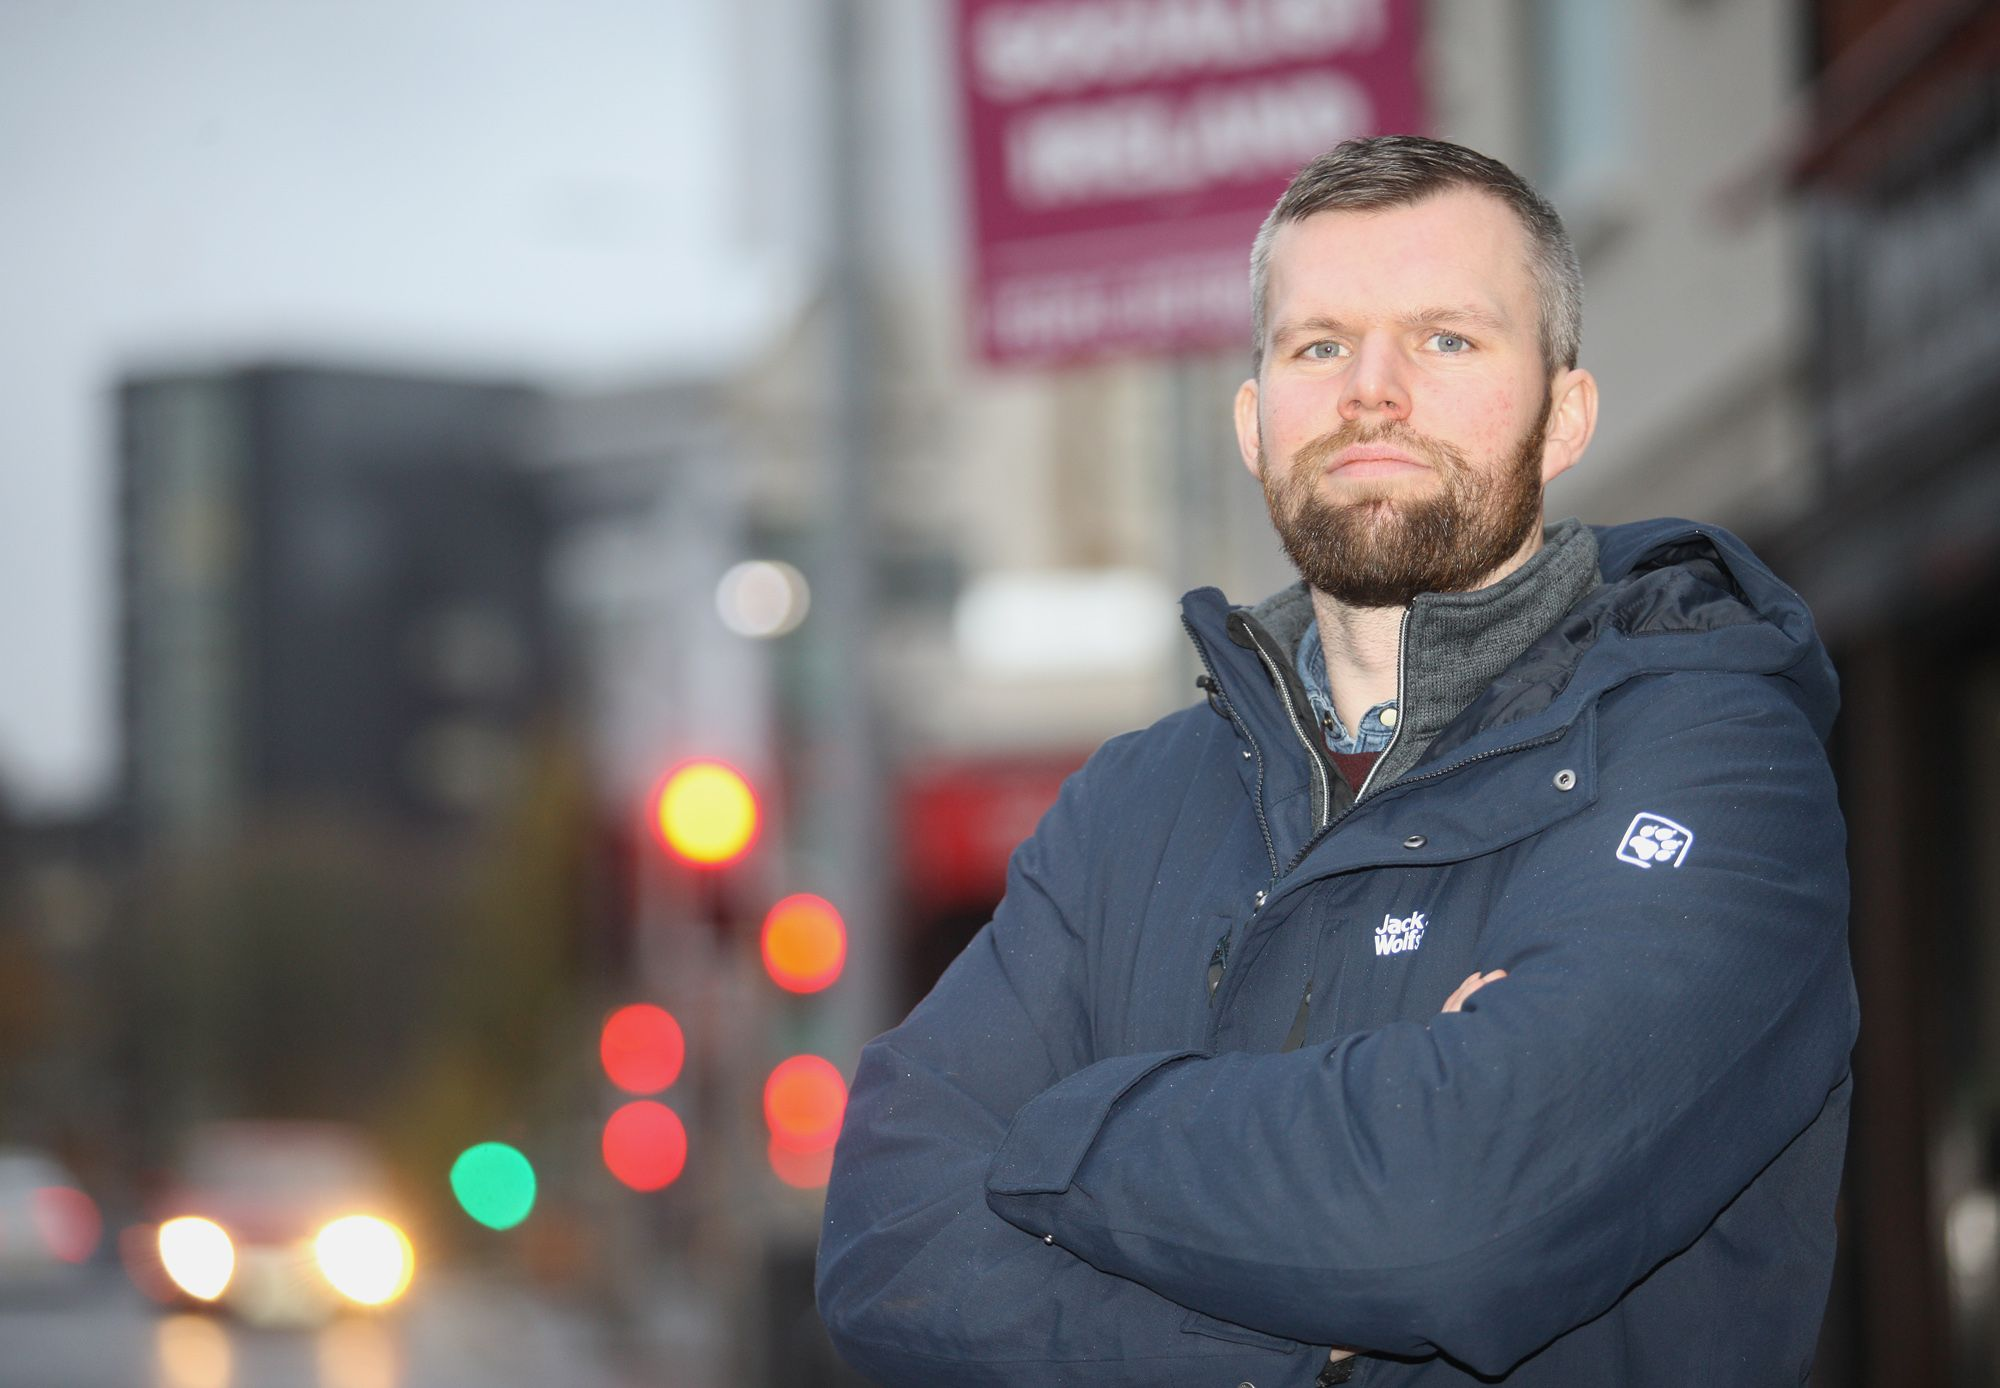 ON YOUR BIKE: Gerry Carroll MLA will host a virtual meeting on Car-Free Day to discuss the lack of cycling infrastructure in West Belfast